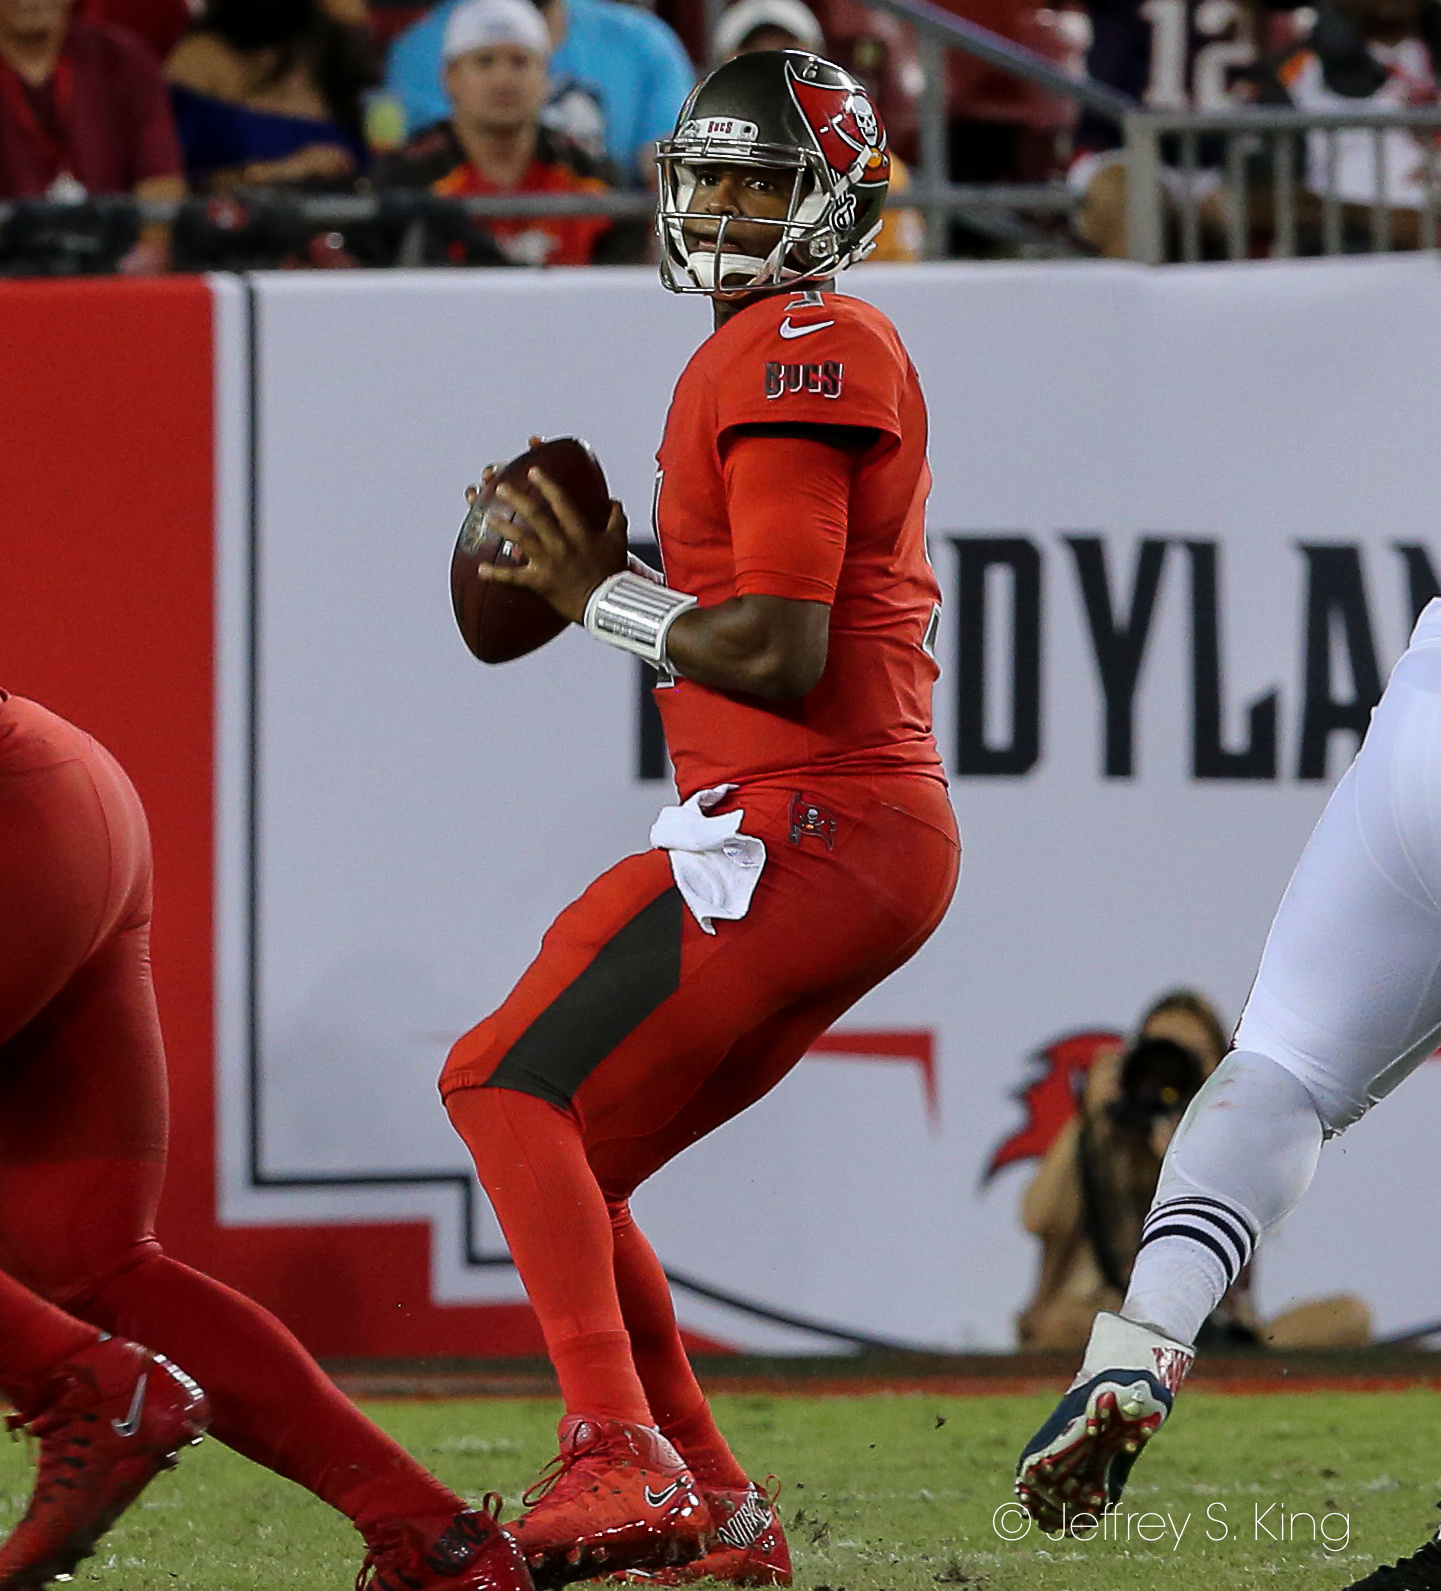 Winston threw for 225 yards in the fourth quarter./JEFFREY S. KING